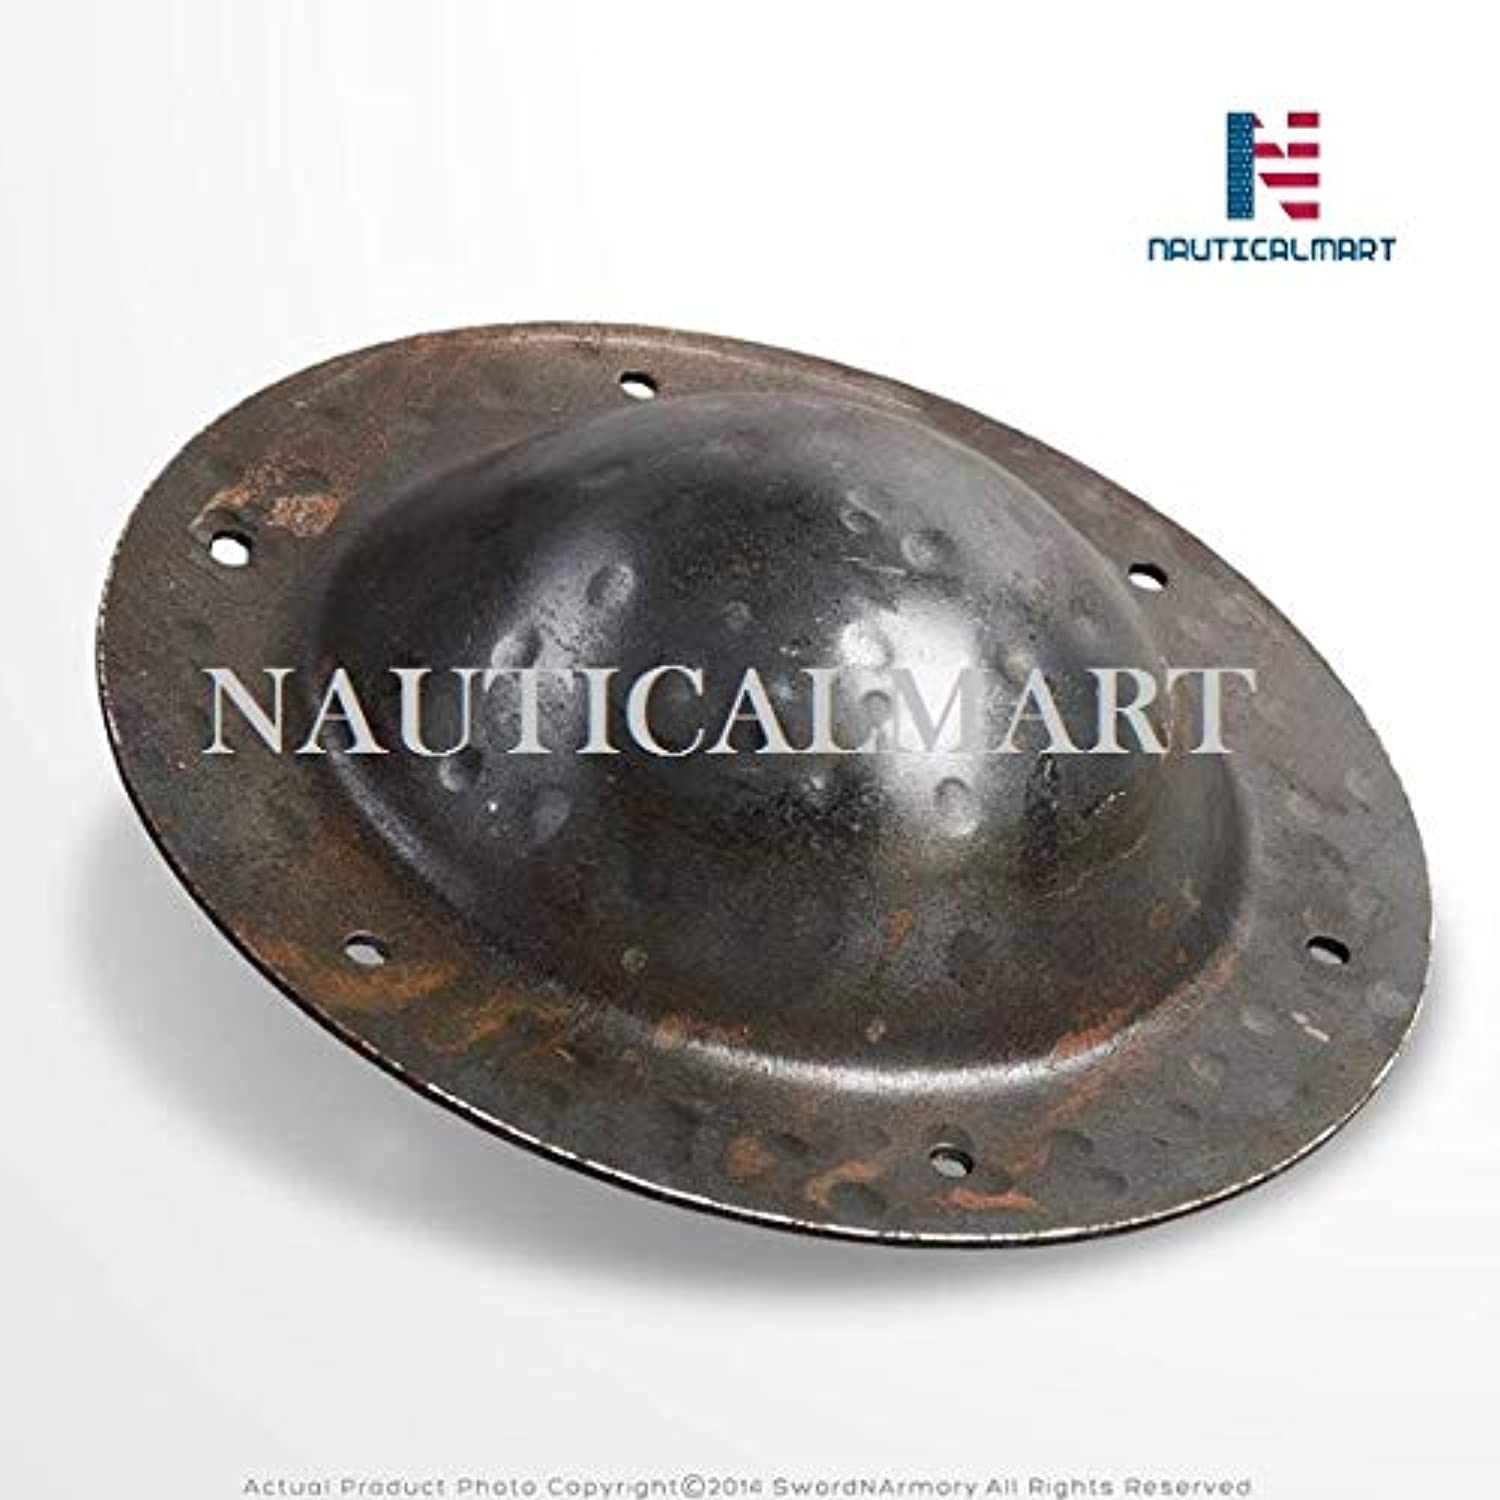 NAUTICALMART Hand Forged Iron 8  Combat Grade Functional Medieval Shield Boss